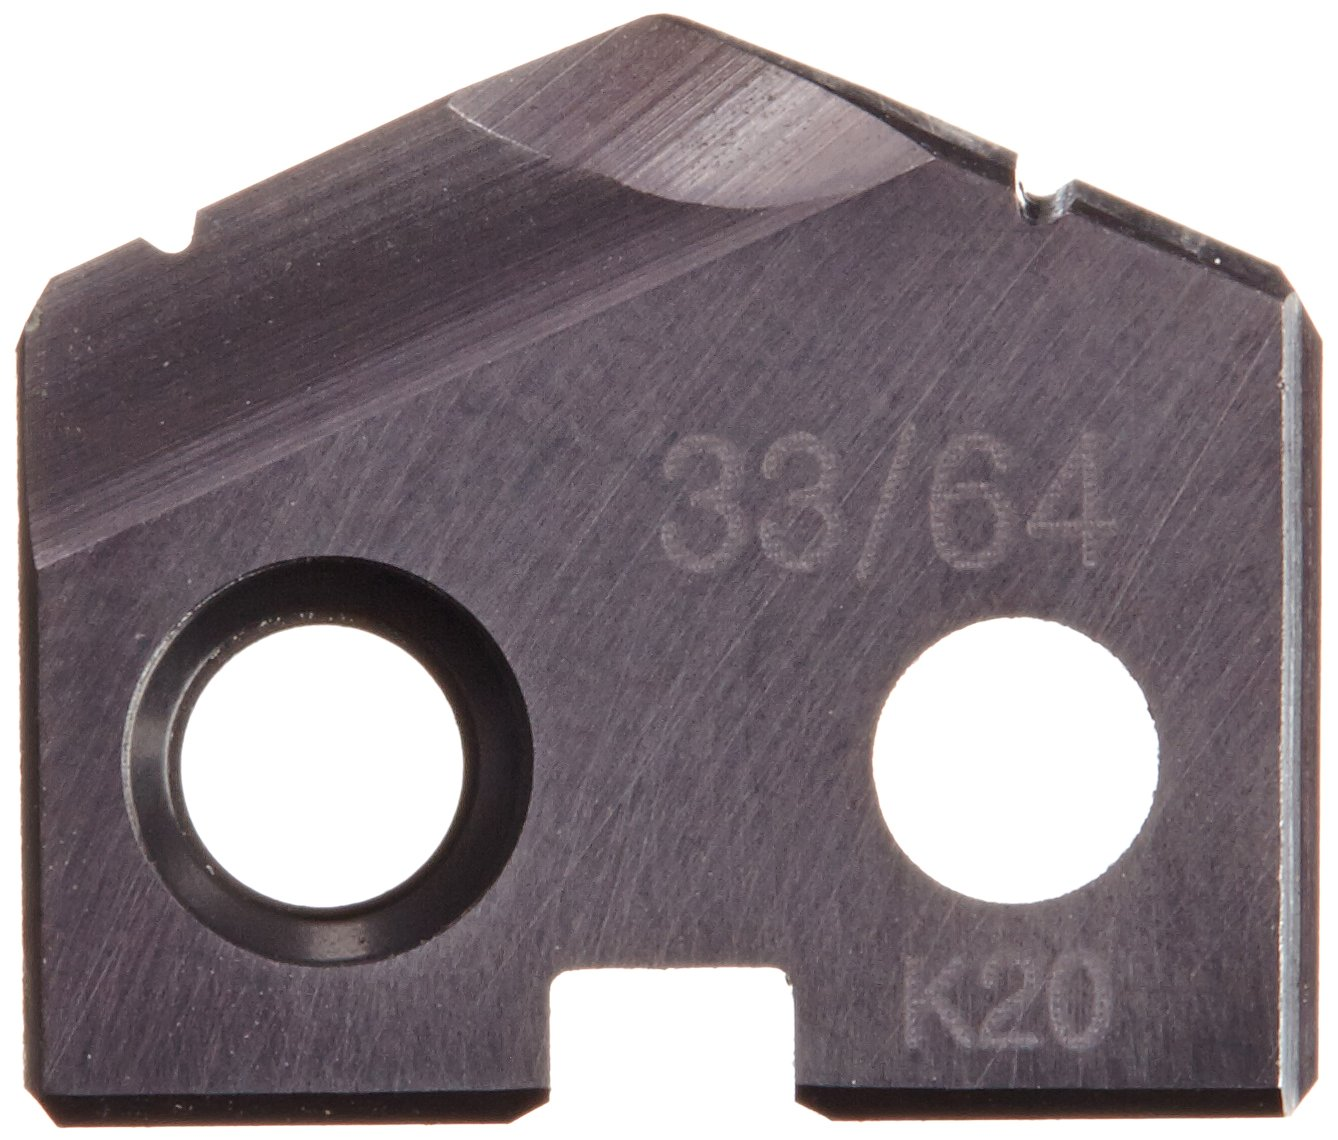 Pack of 2 33//64 Diameter TiAlN Finish 1//8 Thick YG-1 S230 Carbide Throw-Away Drilling Insert